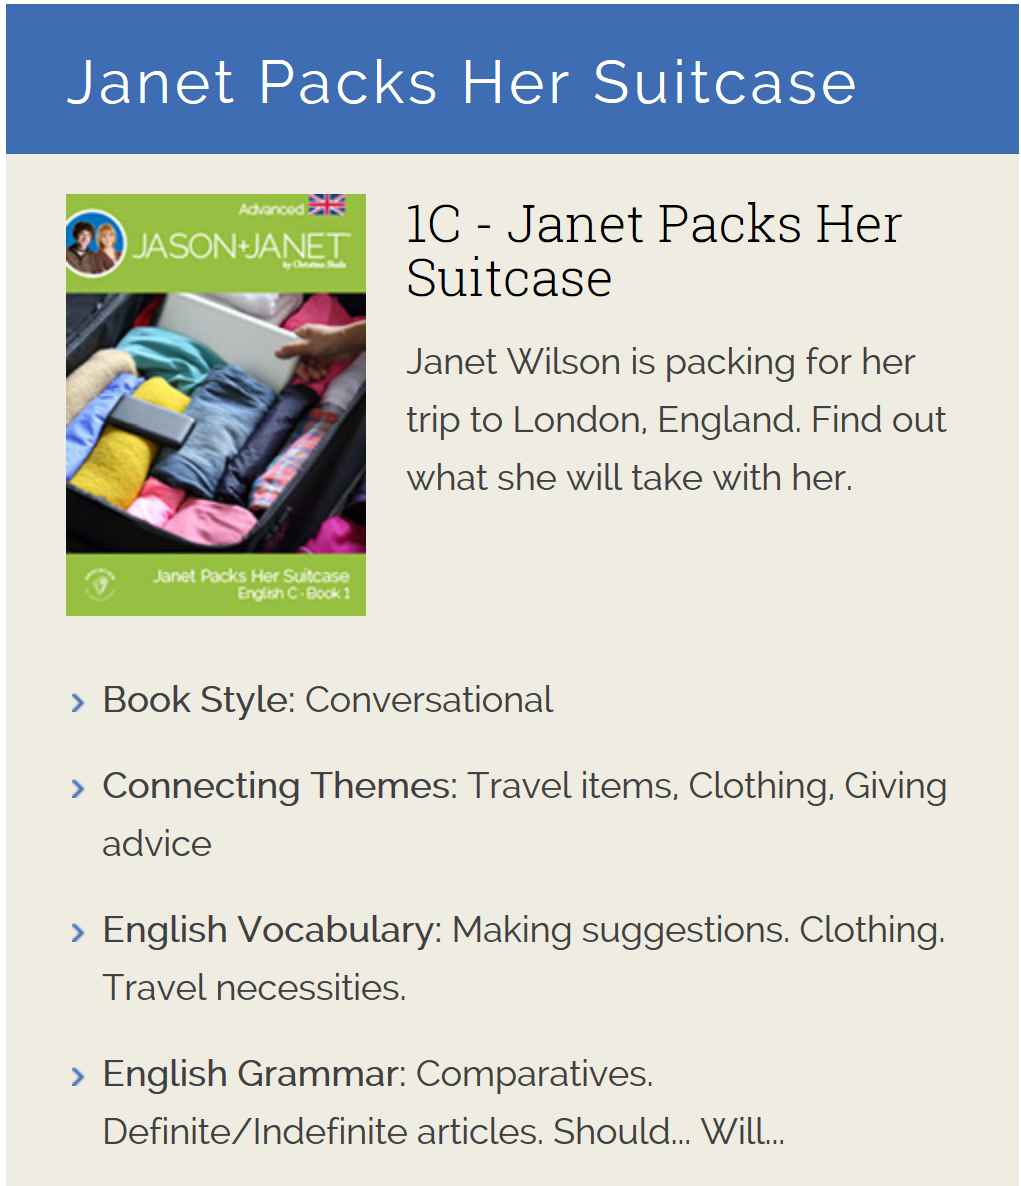 Janet Packs Her Suitcase - ESL eBook